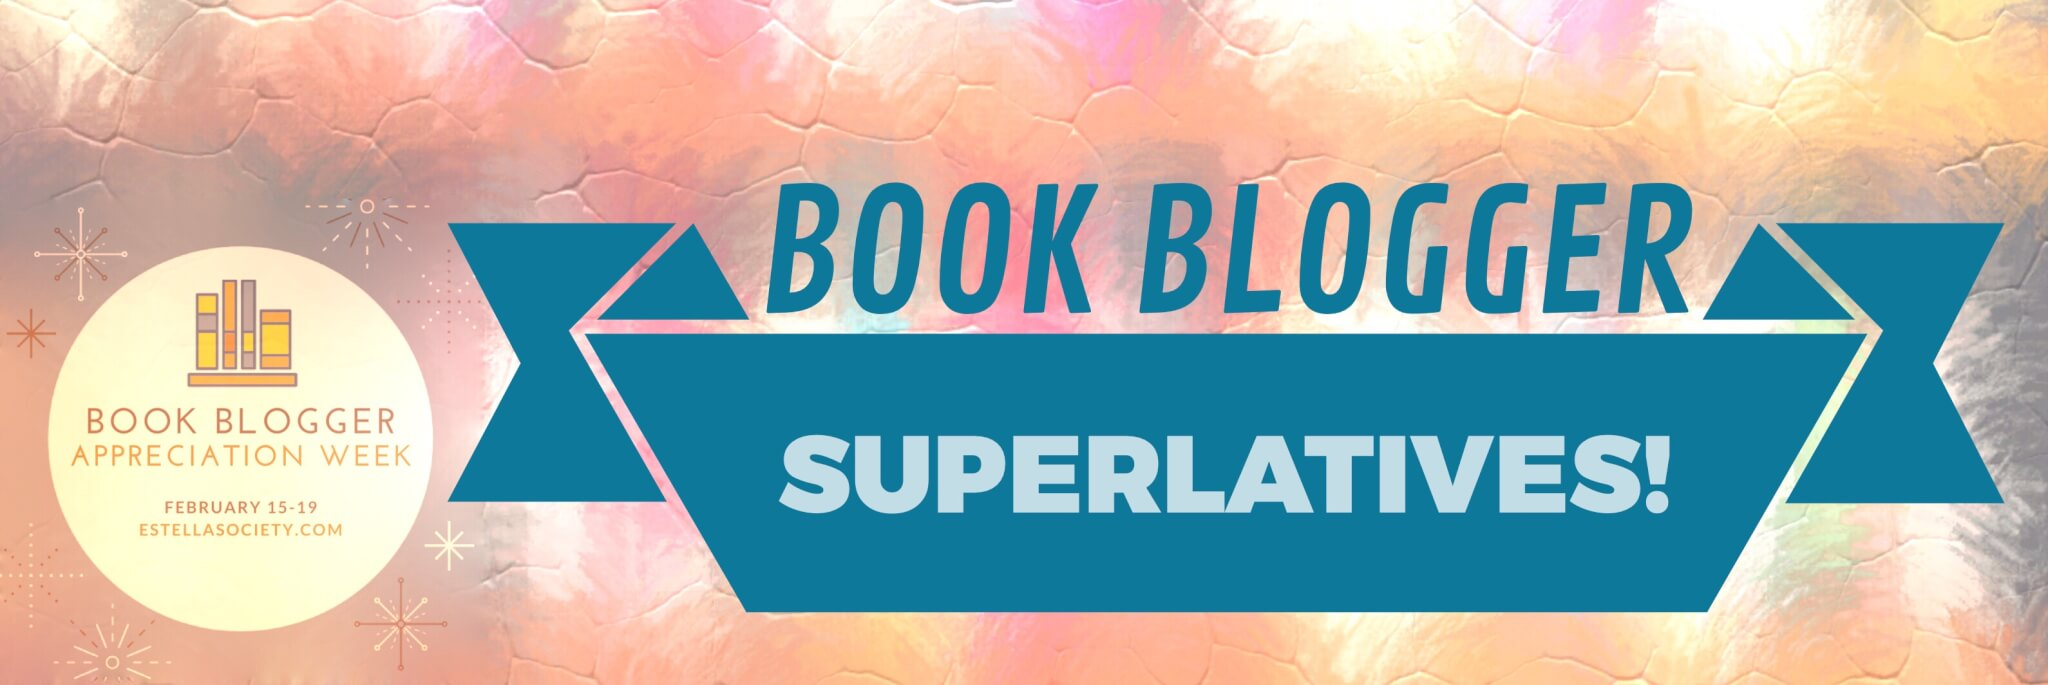 BBAW 2016: Book Blogger Superlatives! And A Bookish (Re)Introduction